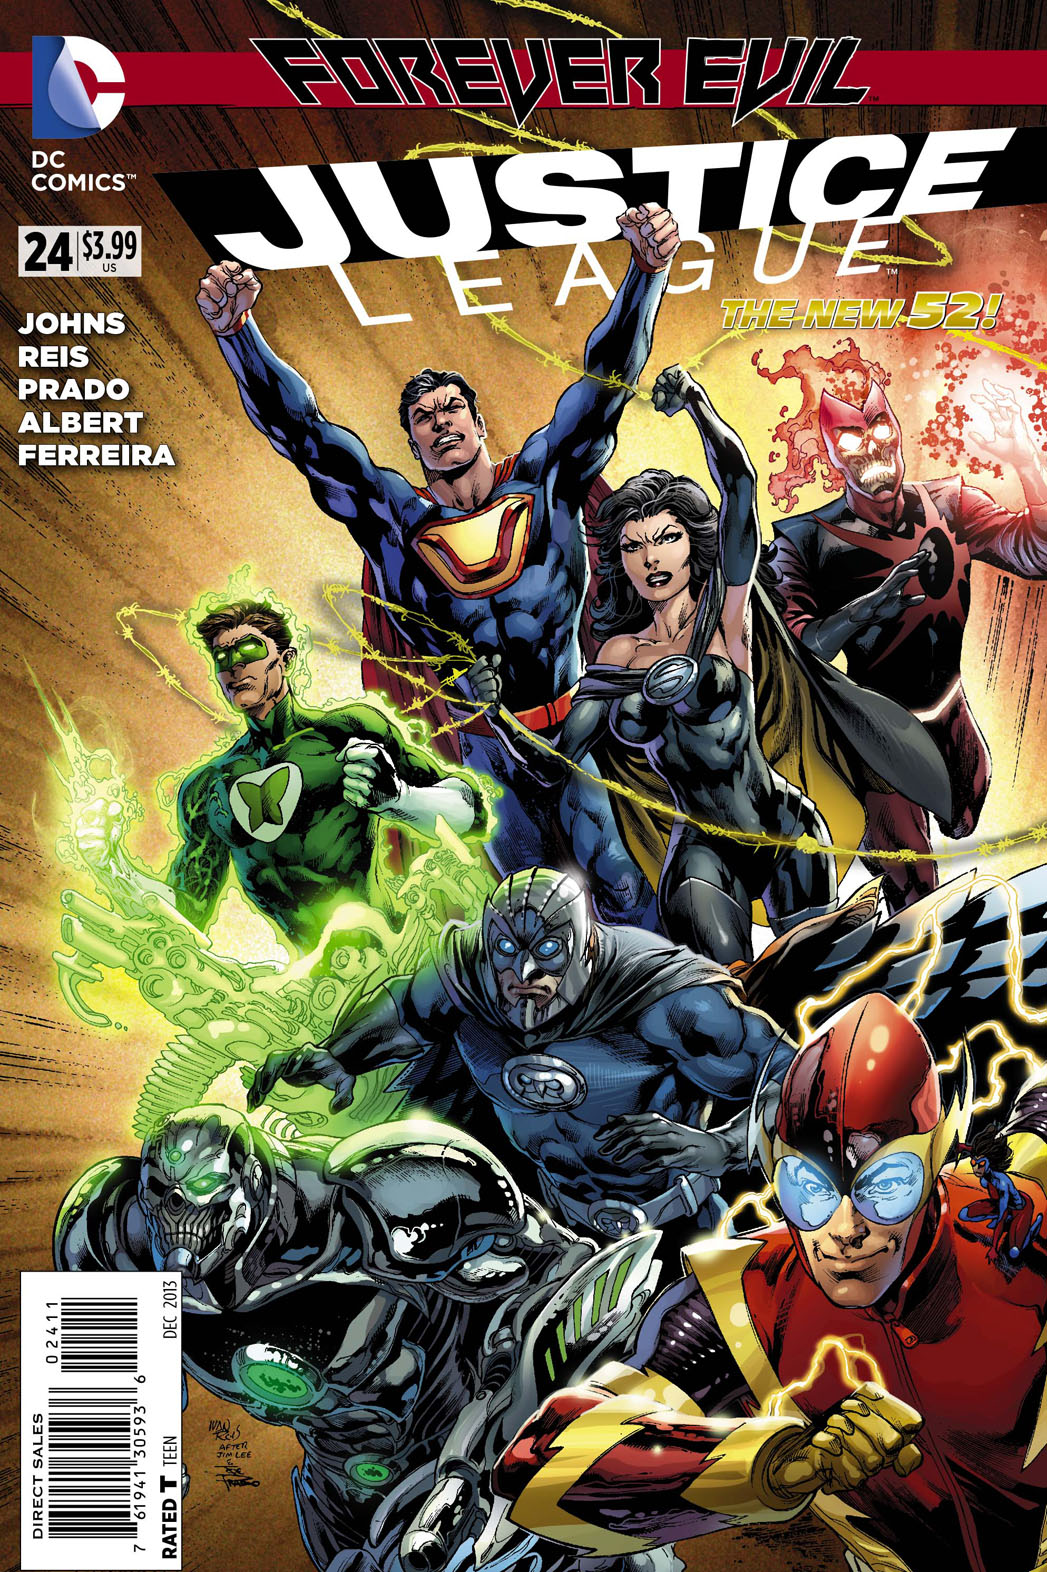 Justice League The New 52 Issue 24 Cover - P 2013